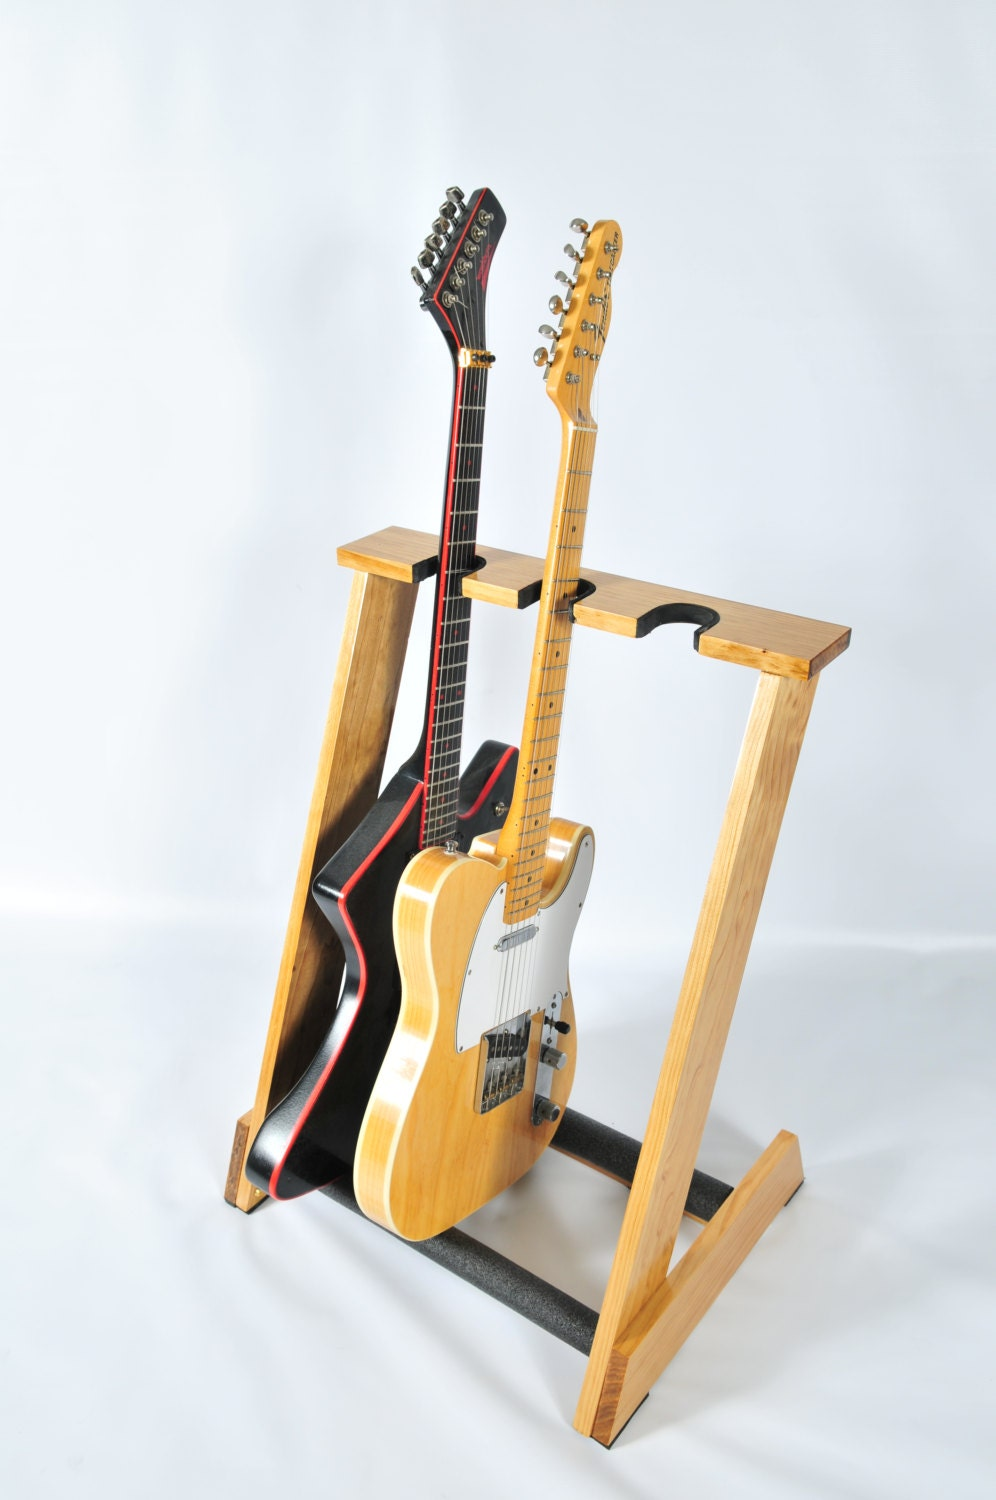 Wood Guitar Holder Xw76 Advancedmassagebysara